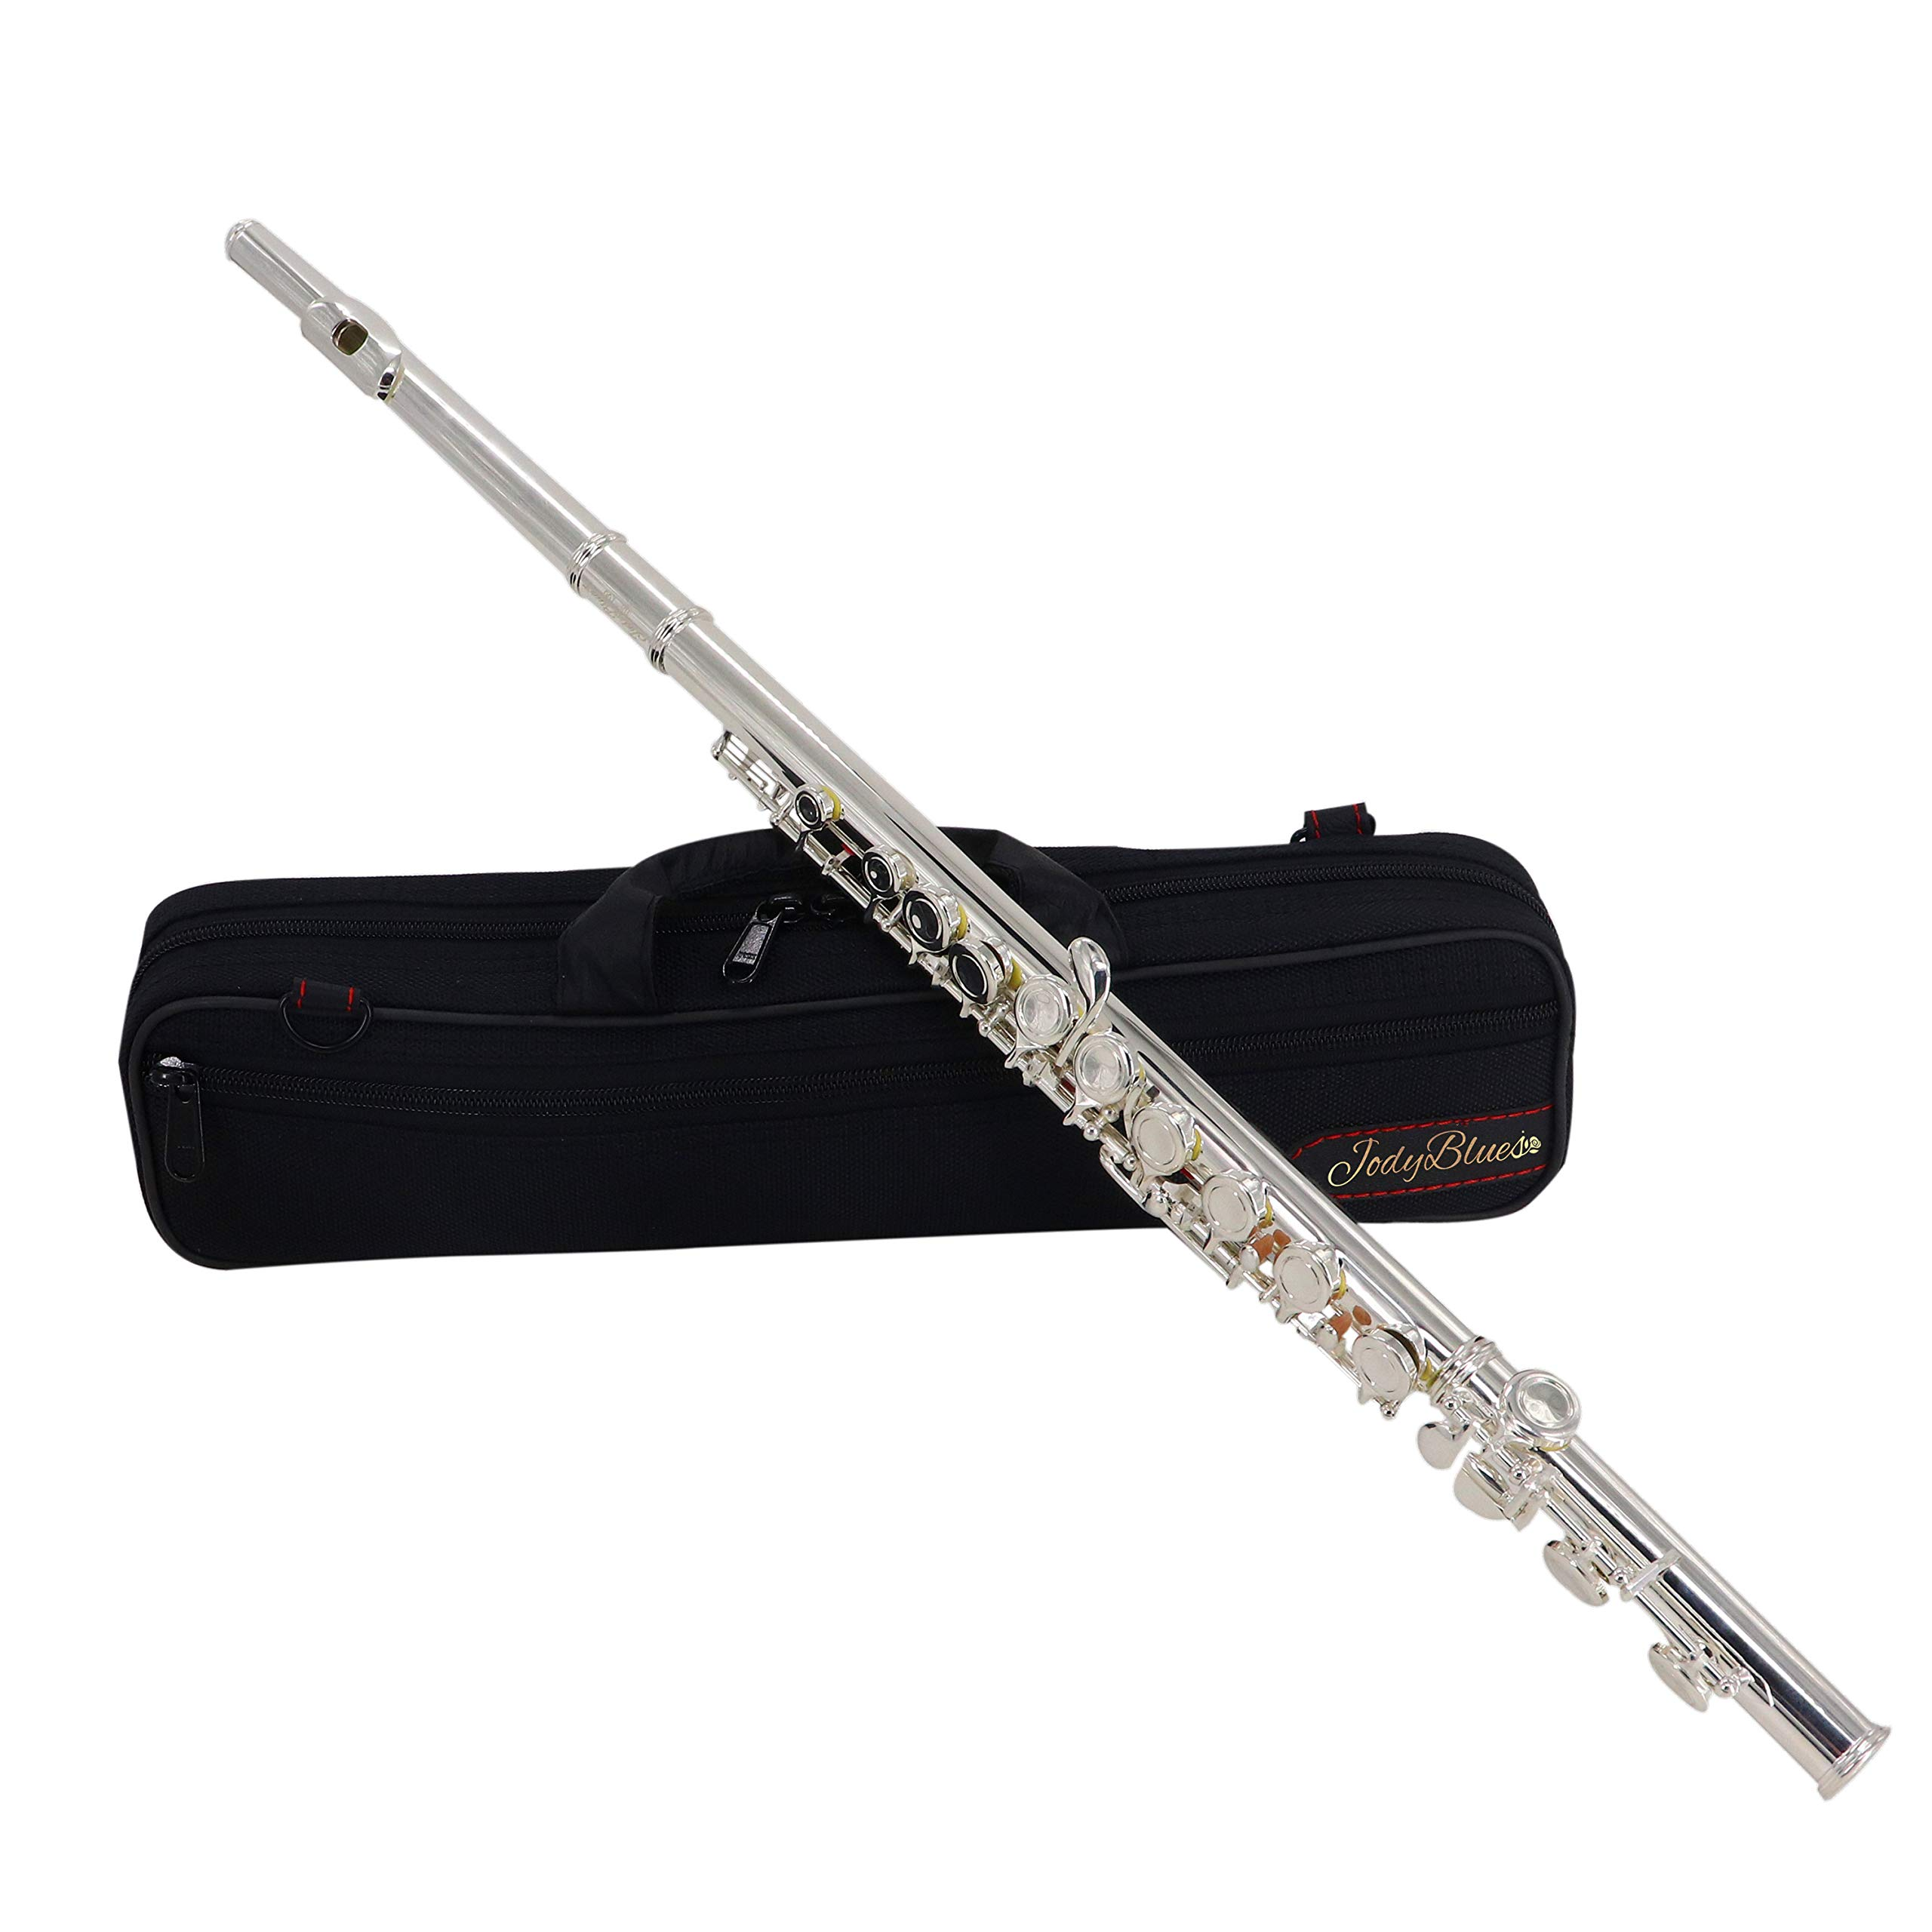 Jody Blues Closed Hole C Flute JDF-100 With Case, Tuning Rod and Cloth,Joint Grease and Gloves Silver plated by Jody Blues